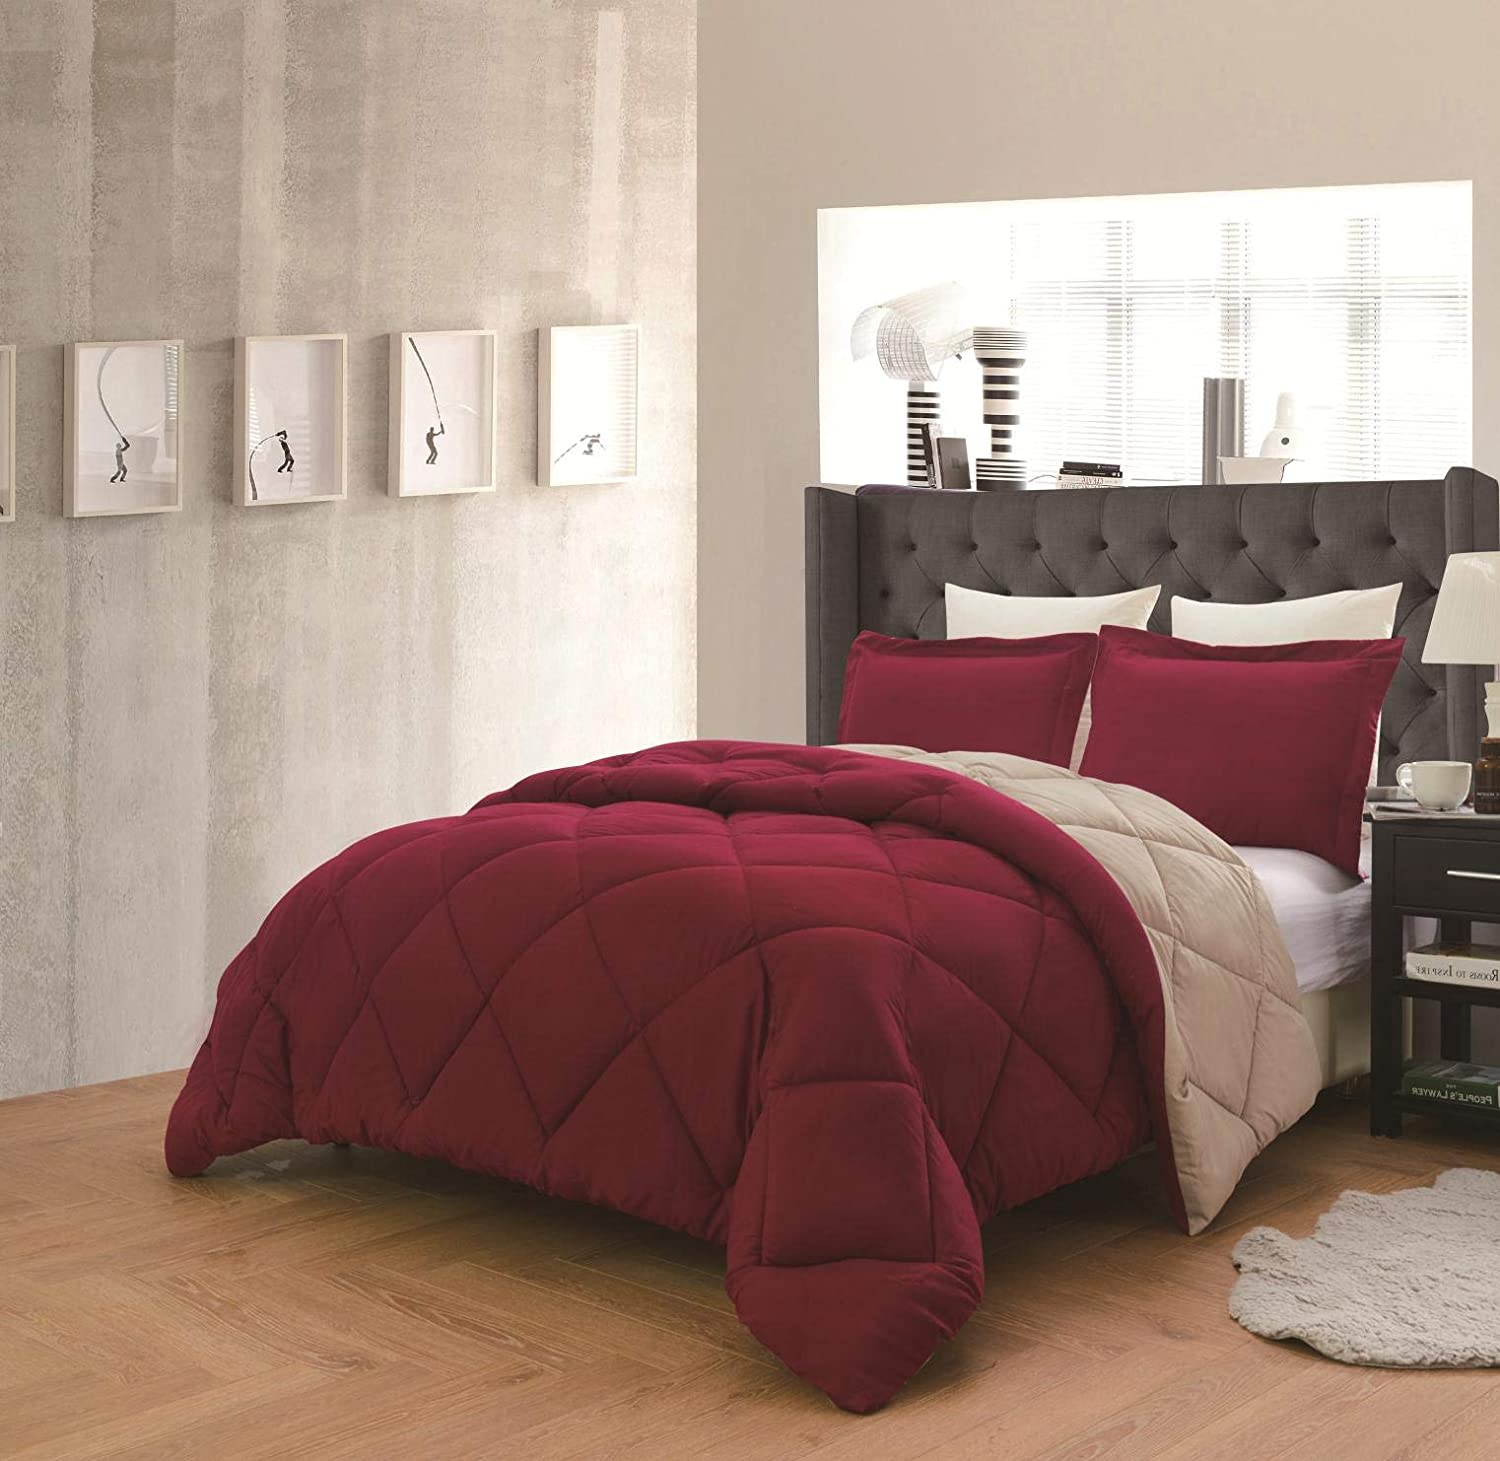 Dayton 3-Piece Reversible Down Alternative Solid Comforter Set - Maroon & Taupe